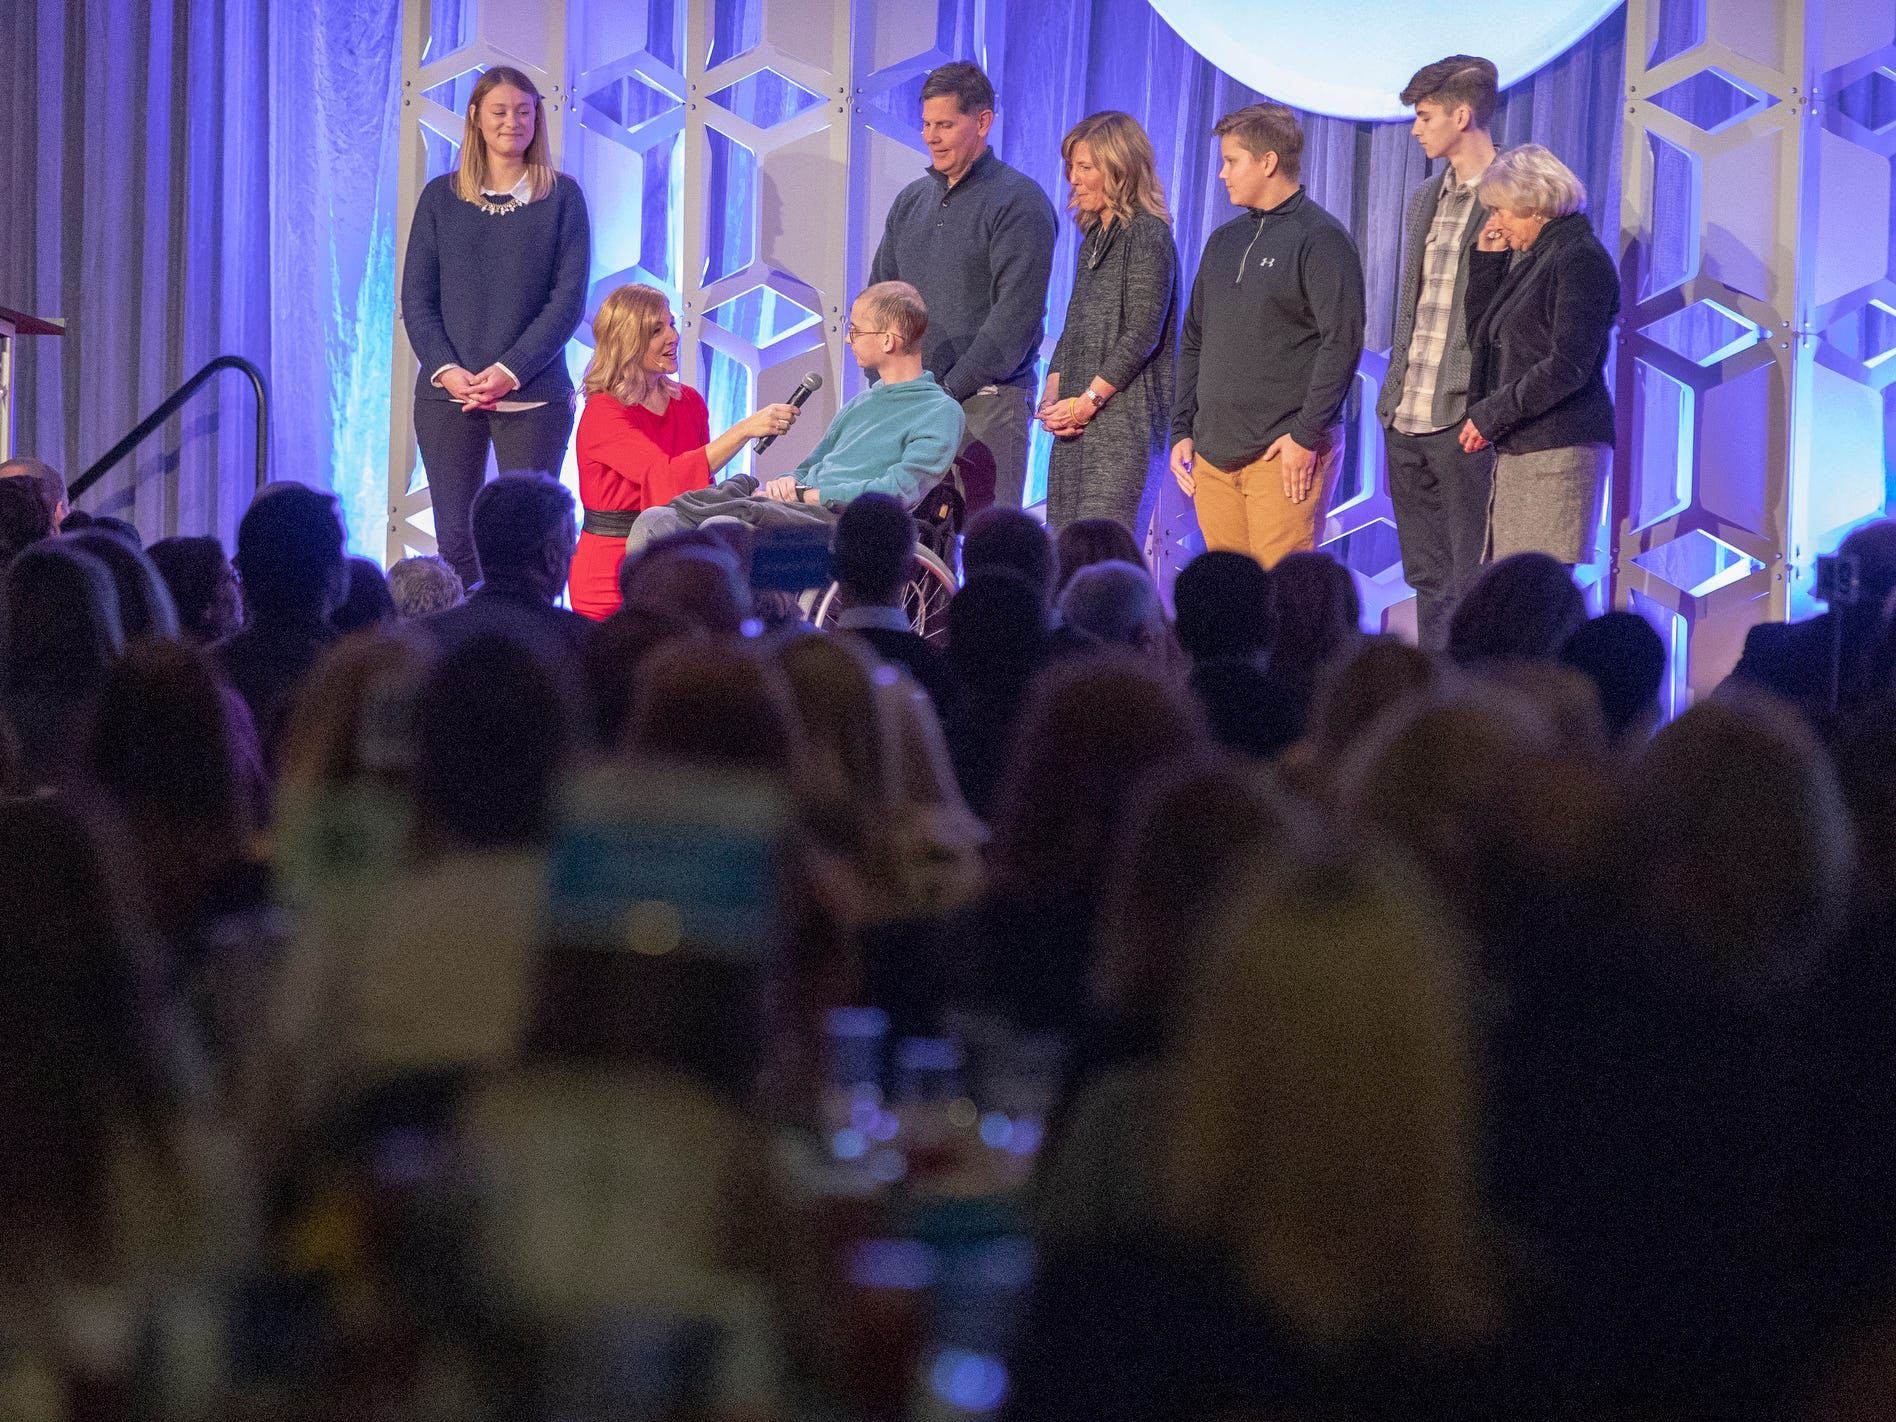 Tyler Trent, with his family, is interviewed at a fundraiser luncheon for Riley Children's Foundation's Be The Hope Now campaign, Indianapolis, Wednesday, Nov. 28, 2018. Trent, who has the rare bone cancer osteosarcoma, is in hospice care, and was given the Sagamore of the Wabash award, given to distinguished Hoosiers.